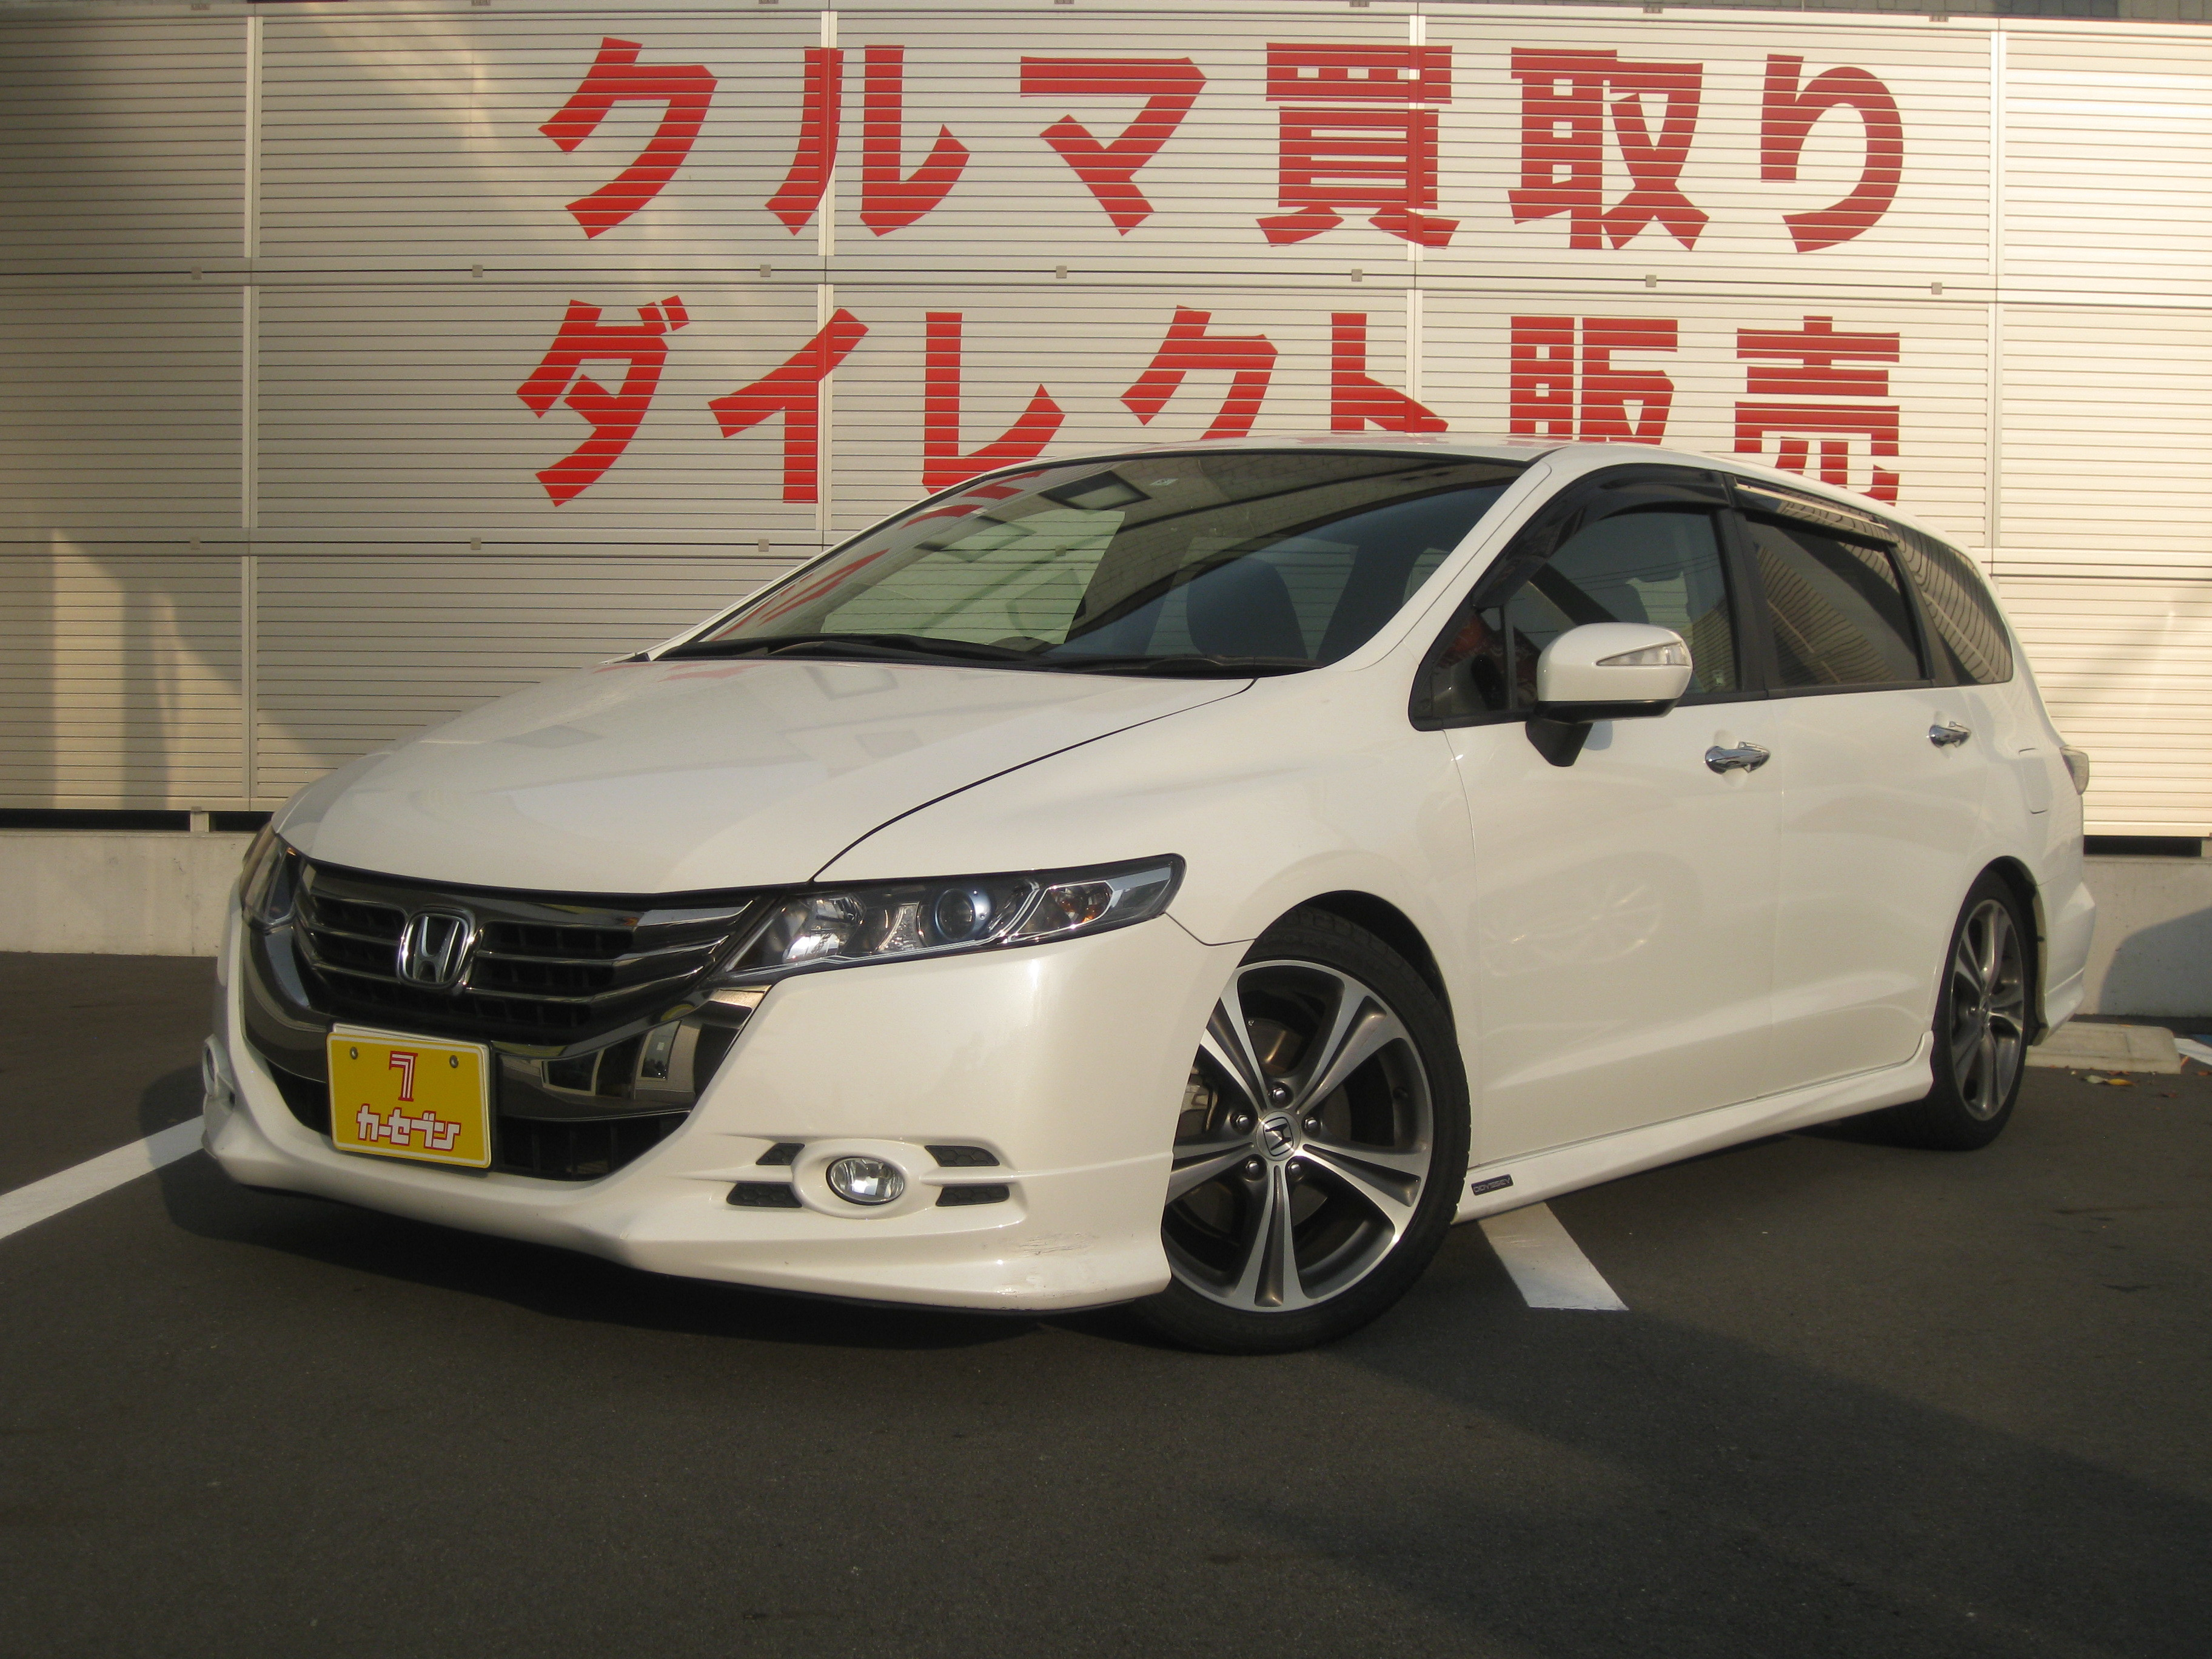 HONDA Odyssey 2012 For Sale Japanese Used Cars